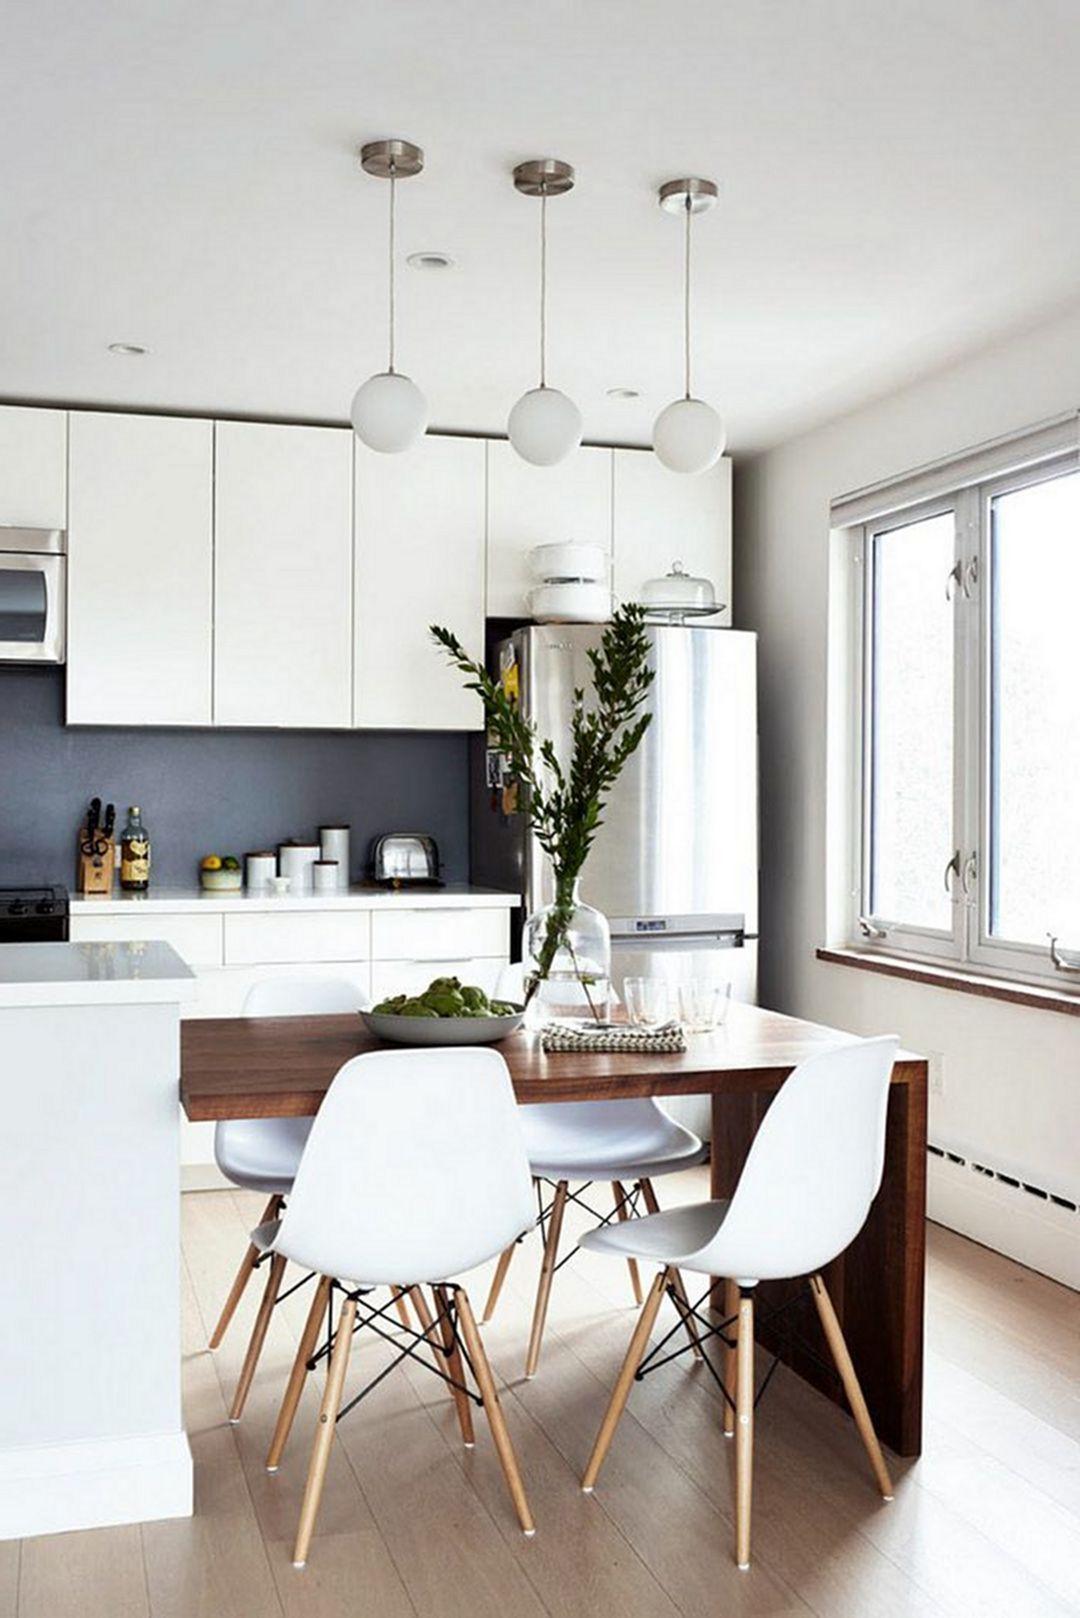 sublime 50 awesome minimalist kitchen for small space in on awesome modern kitchen design ideas id=91712